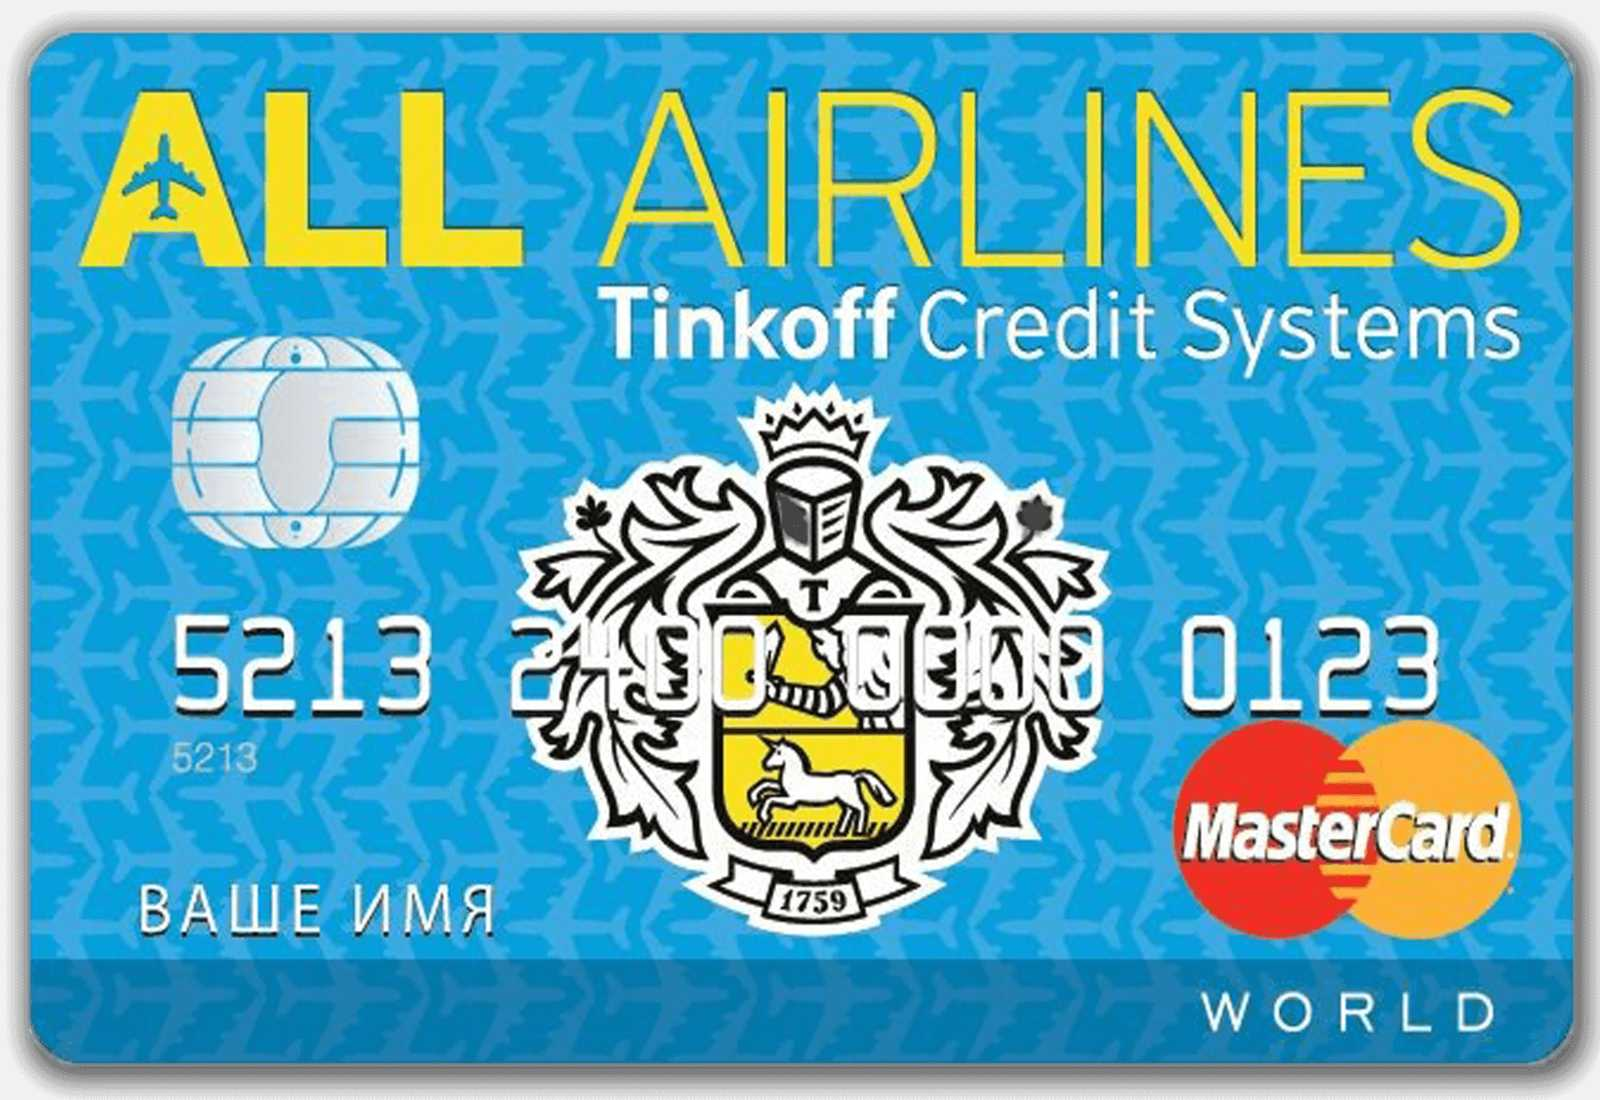 All Airlines от Тинькофф